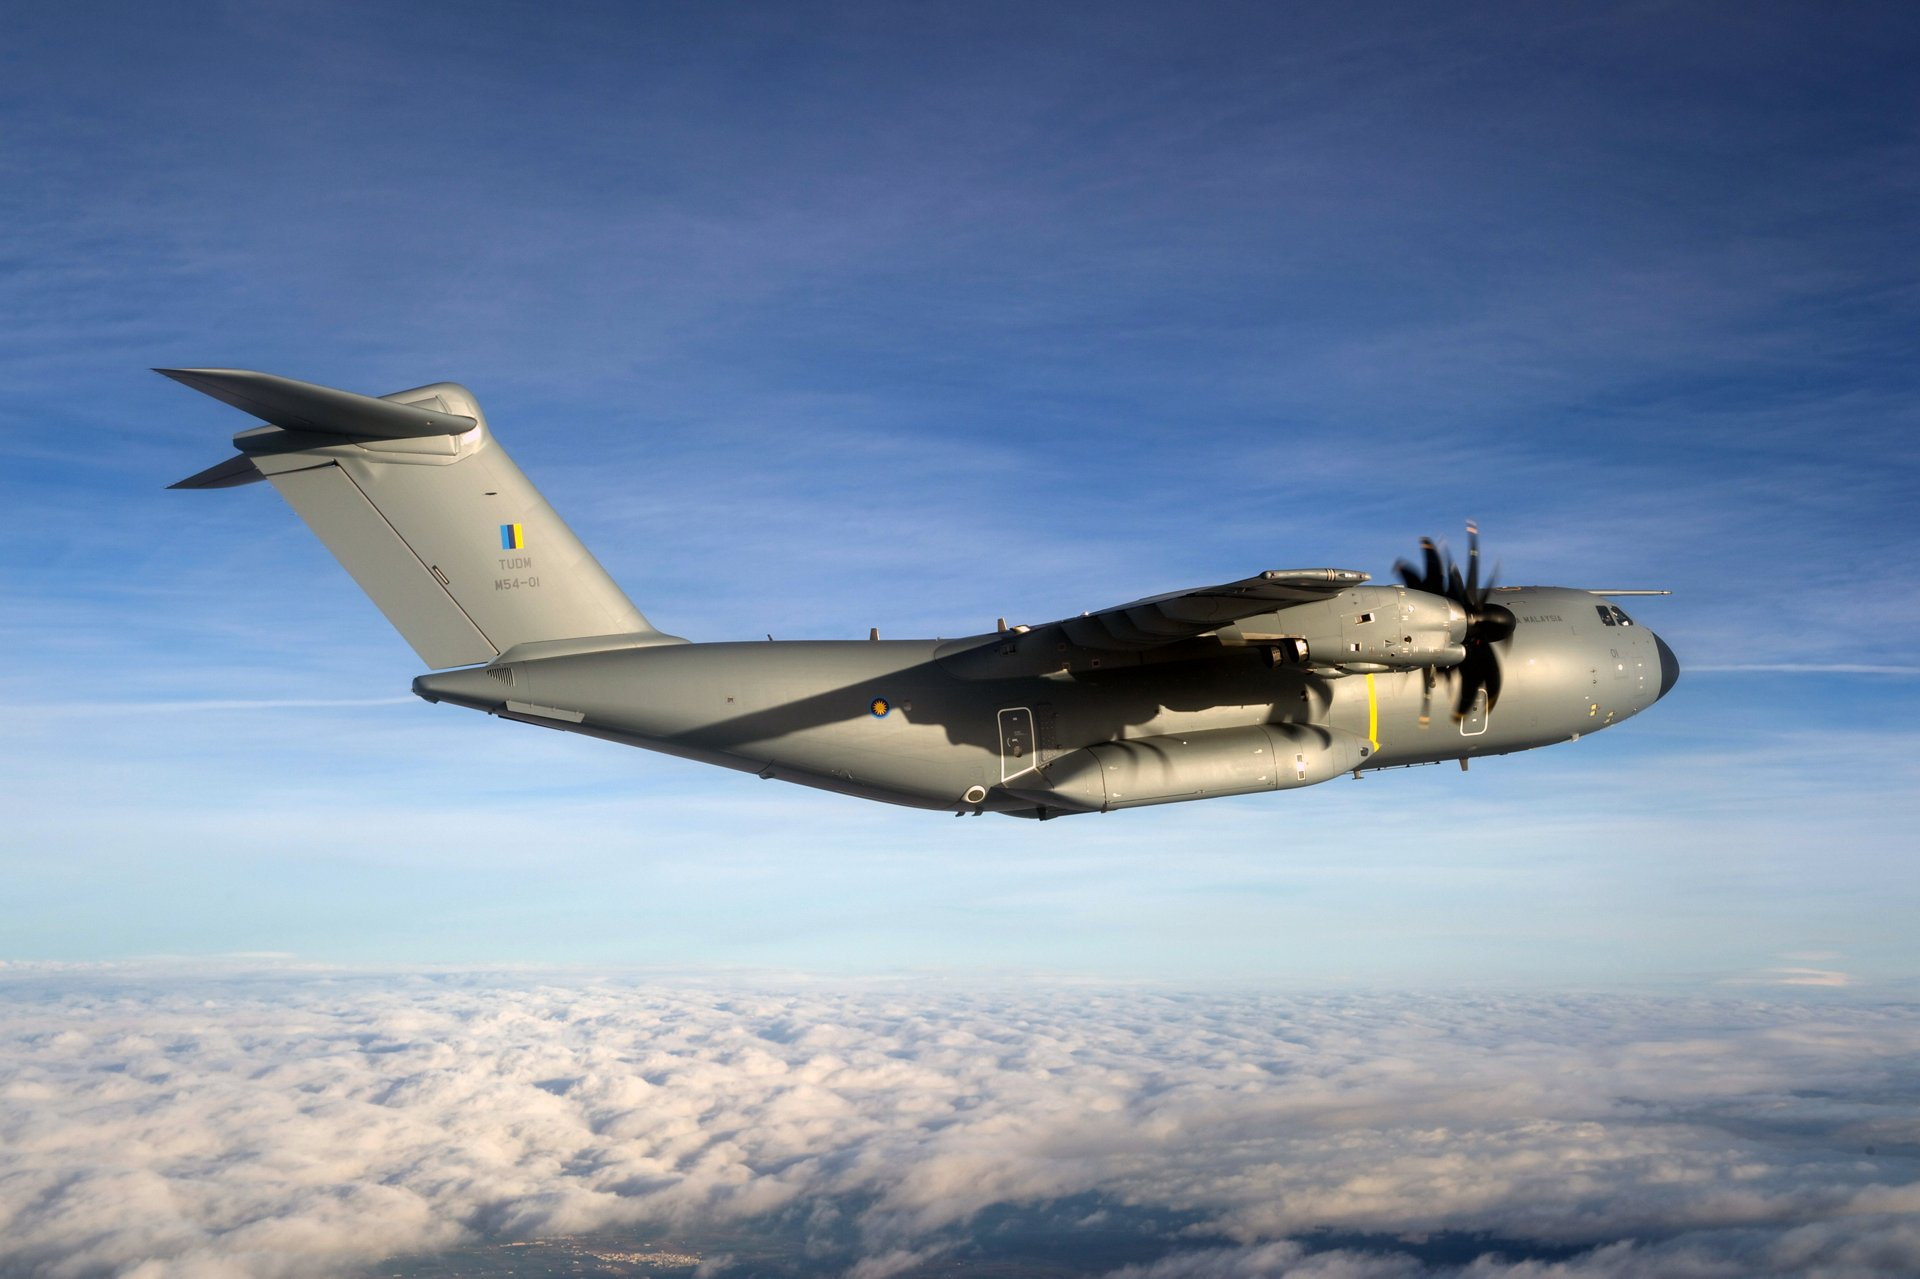 Airbus\' A400M airlifter: military workhorse around the globe